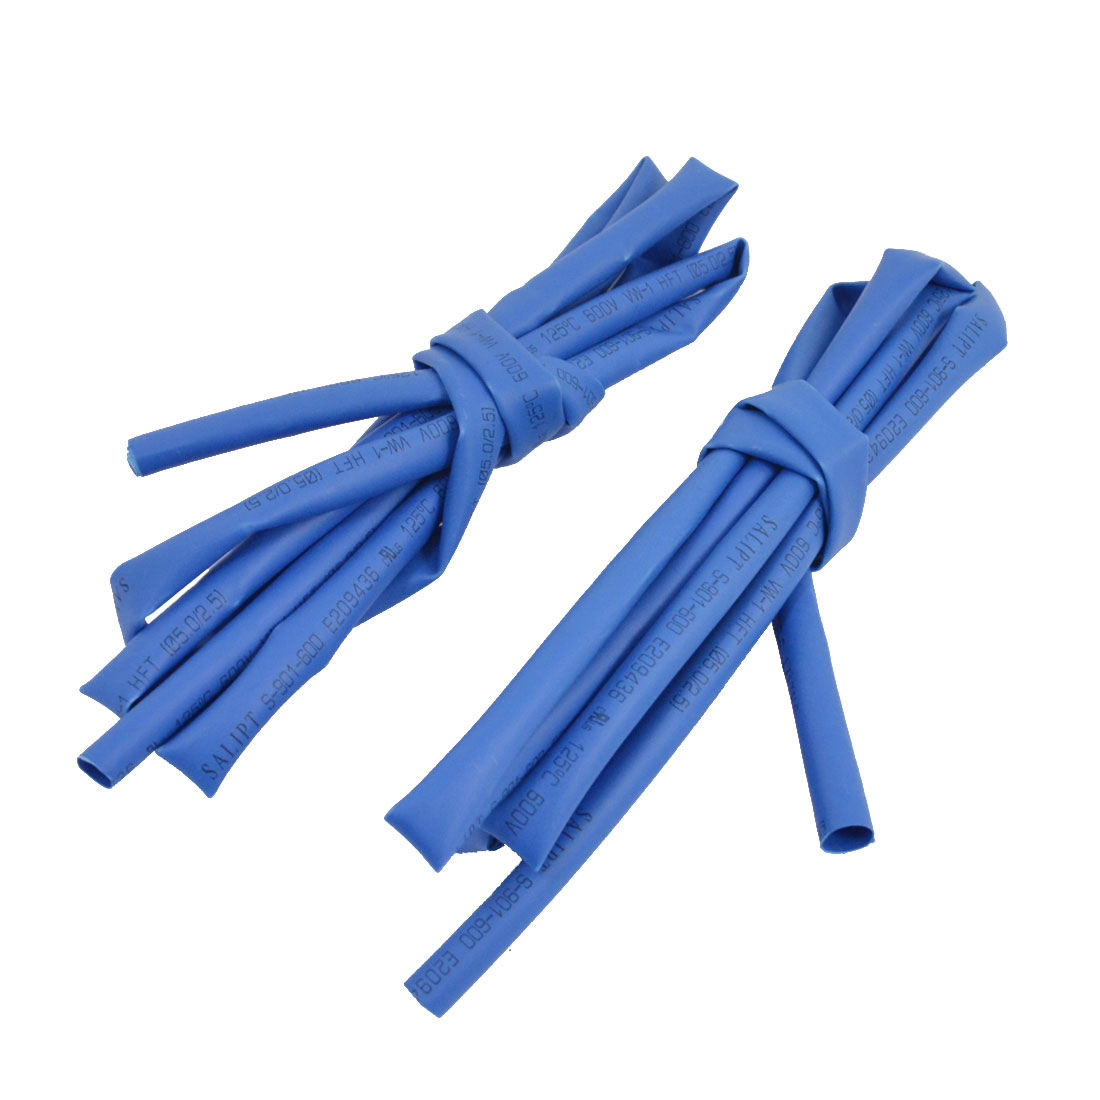 RC Model Part Dia Ratio 2/1 Blue Insulated Heat Shrink Tube Shrinkable Pipe 5mm 1m 3.3ft 2 Pcs